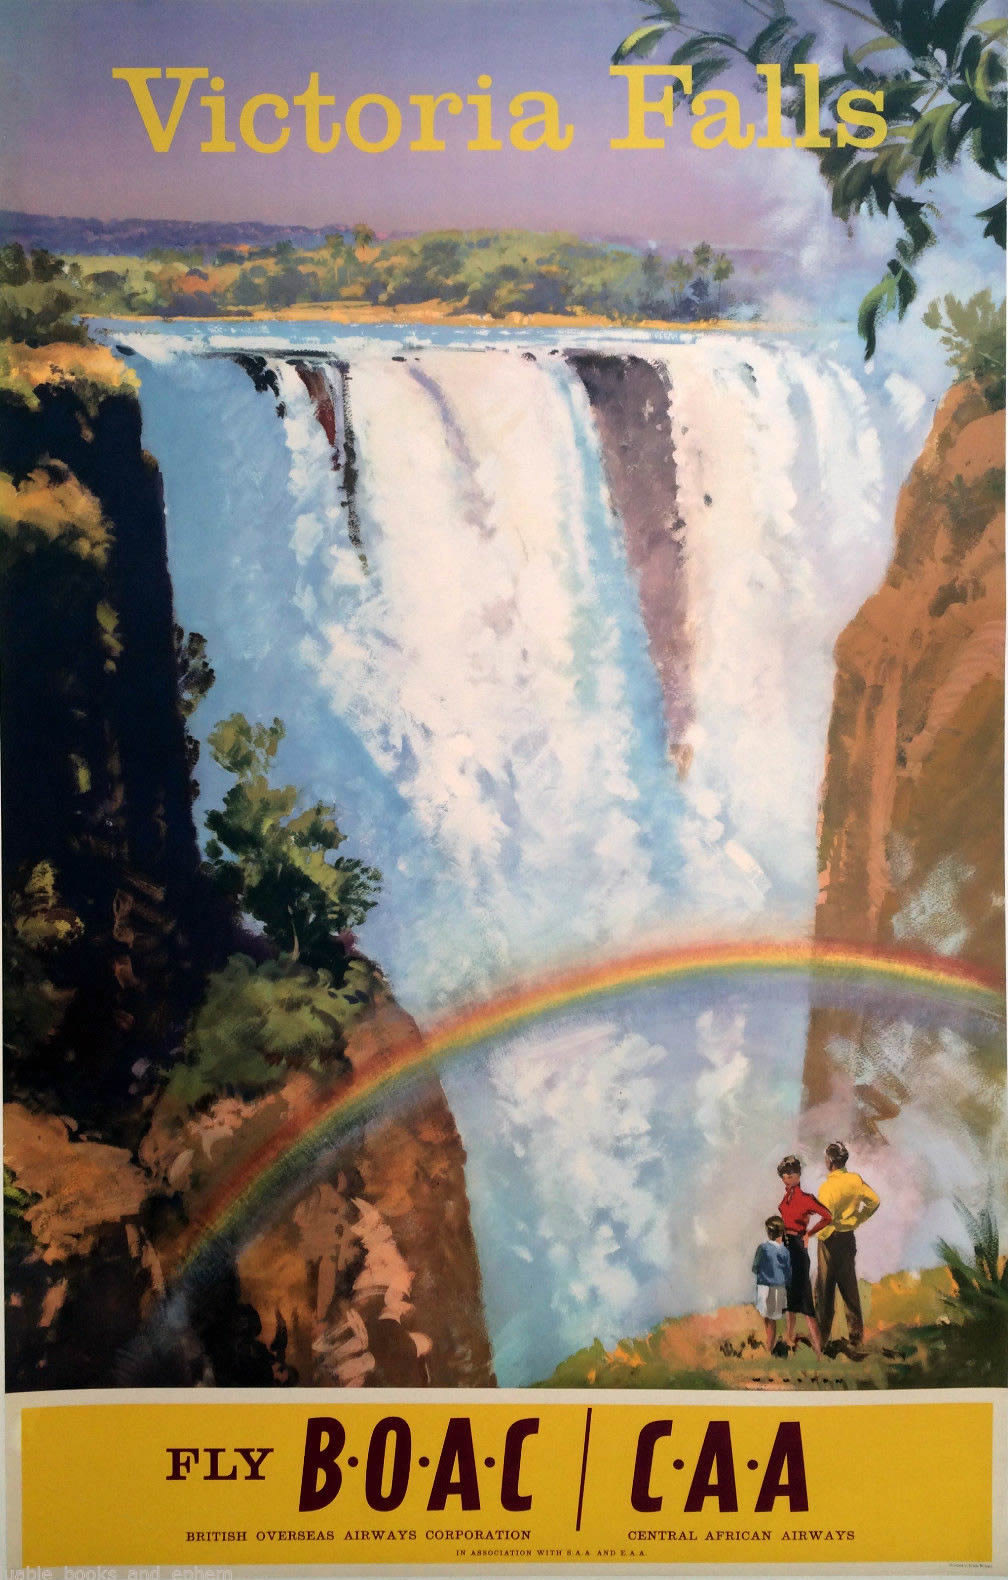 To The Victoria Falls Flying Boats